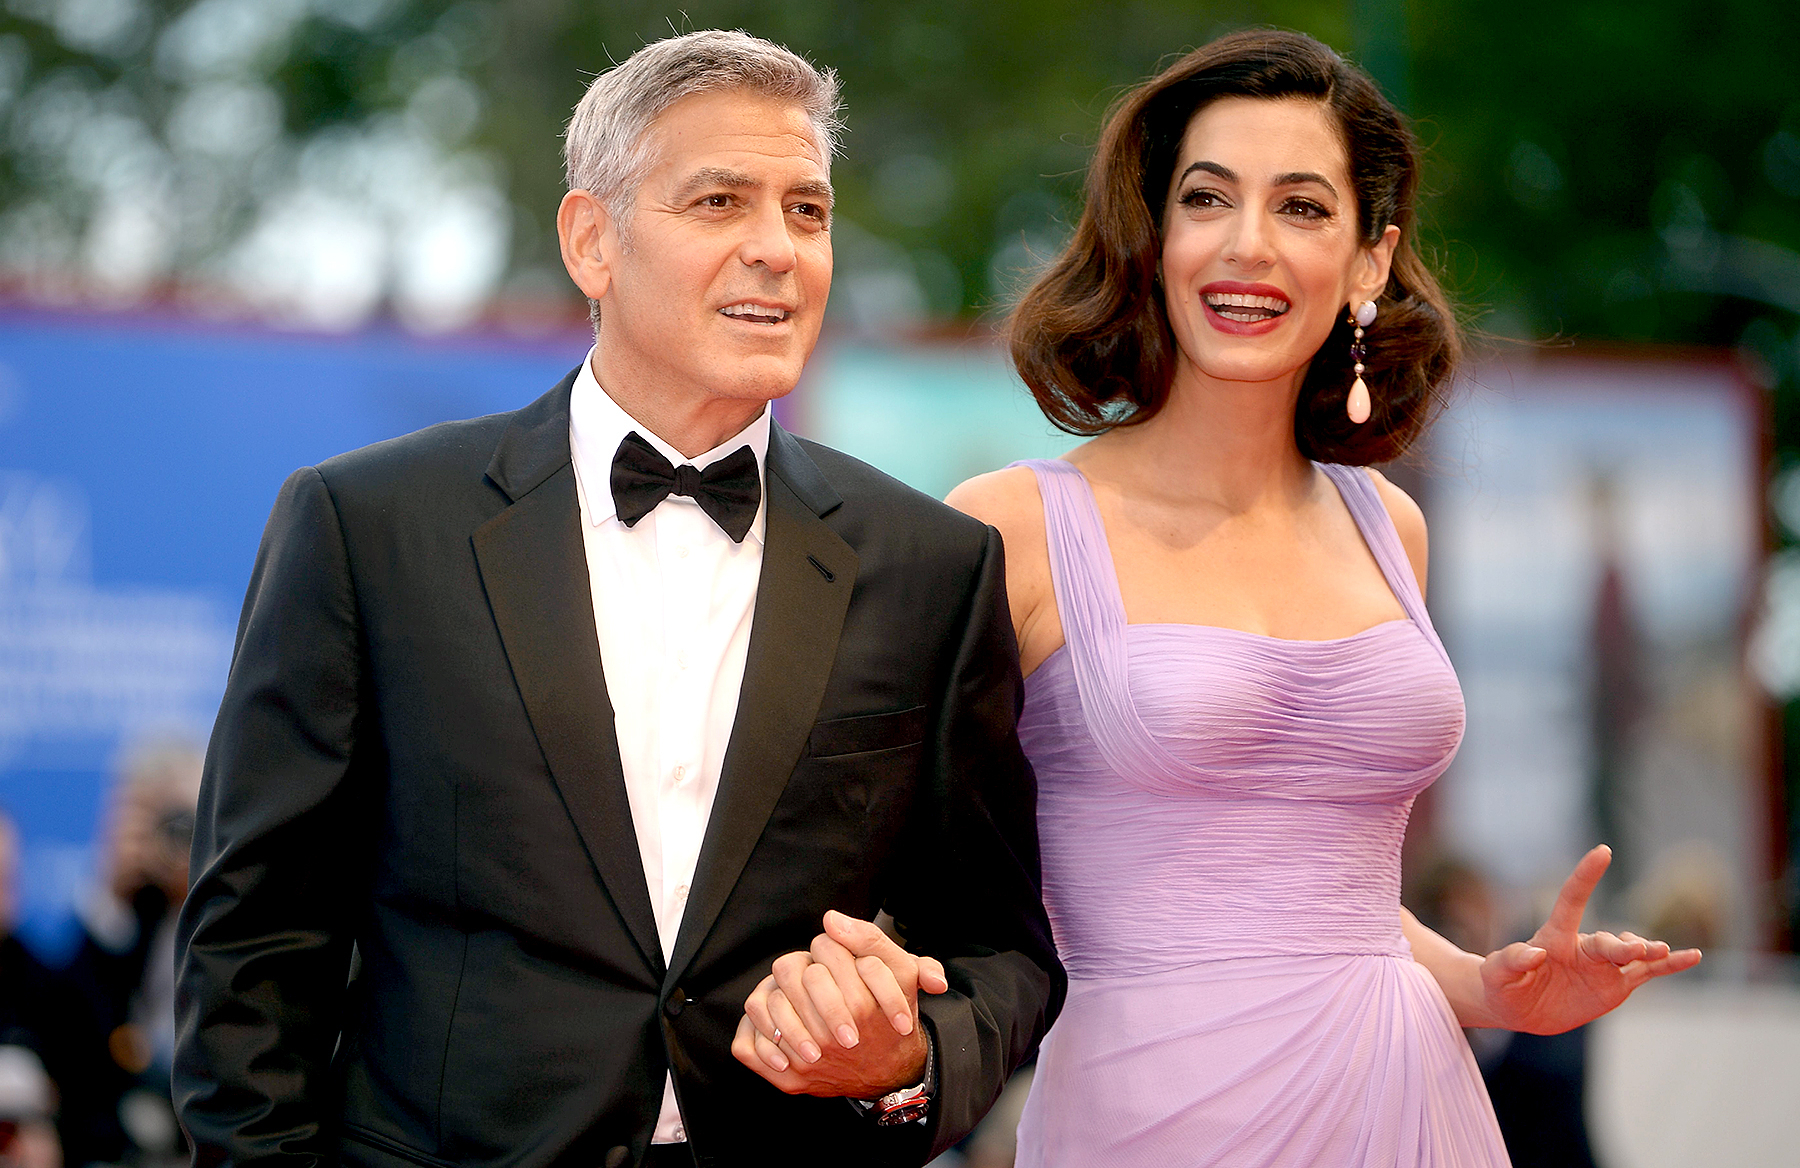 George Clooney and Amal Clooney attend the premiere of 'Suburbicon' at the 74th Venice Film Festival at Venice Lido on September 2, 2017.